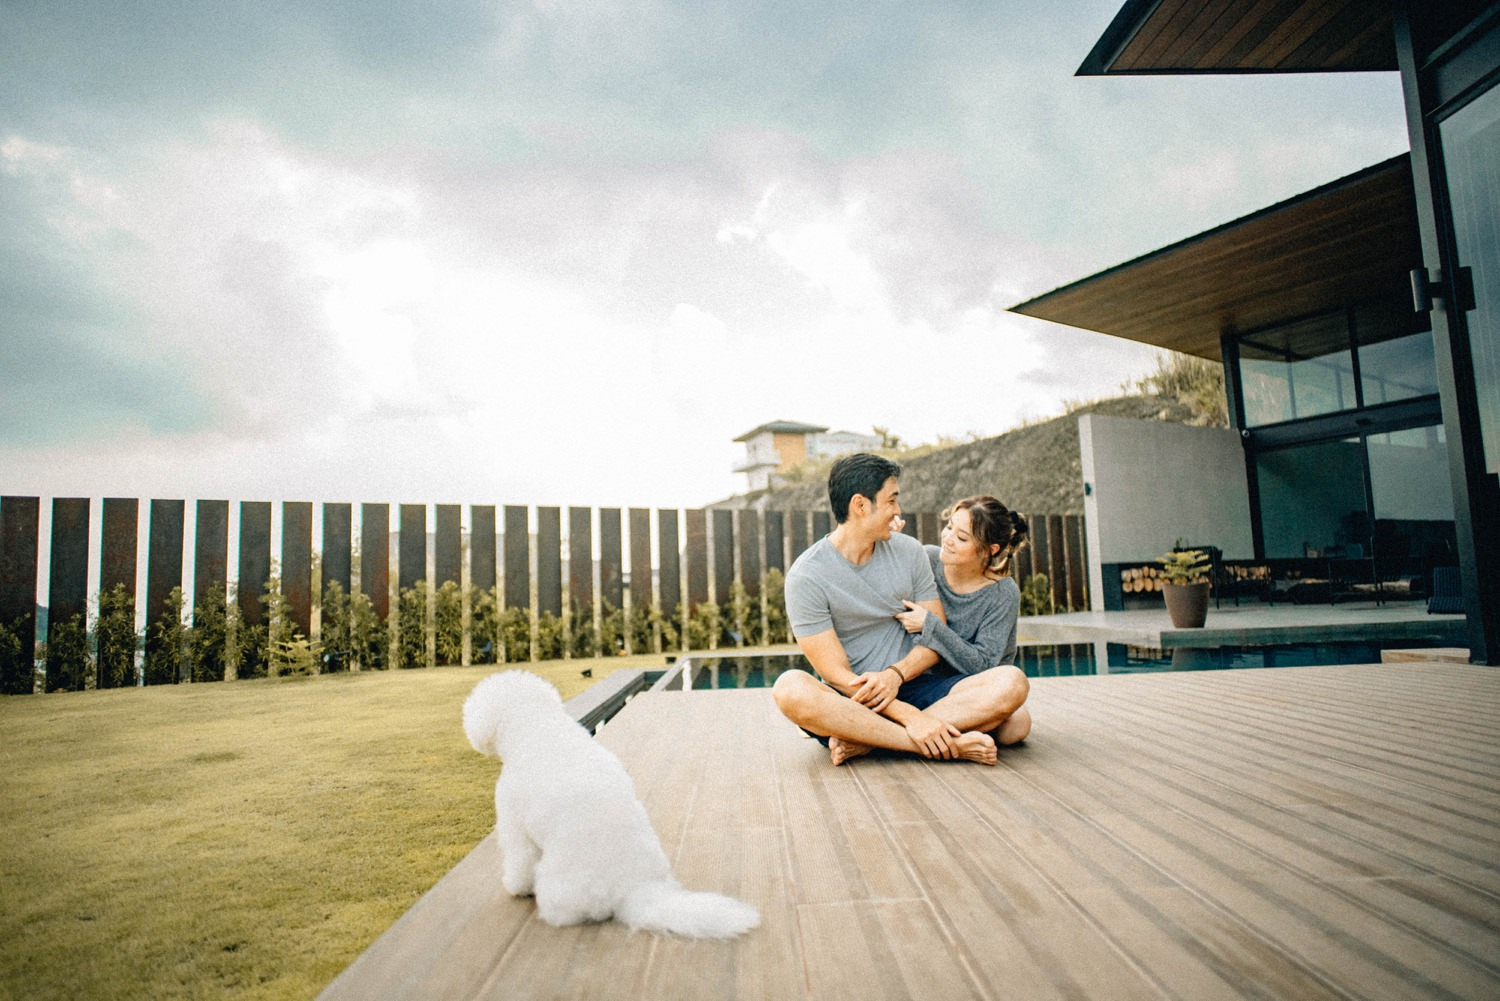 Oak St Studios - Kryz Uy and Slater Young - Cebu Philippines Wedding Photographer -